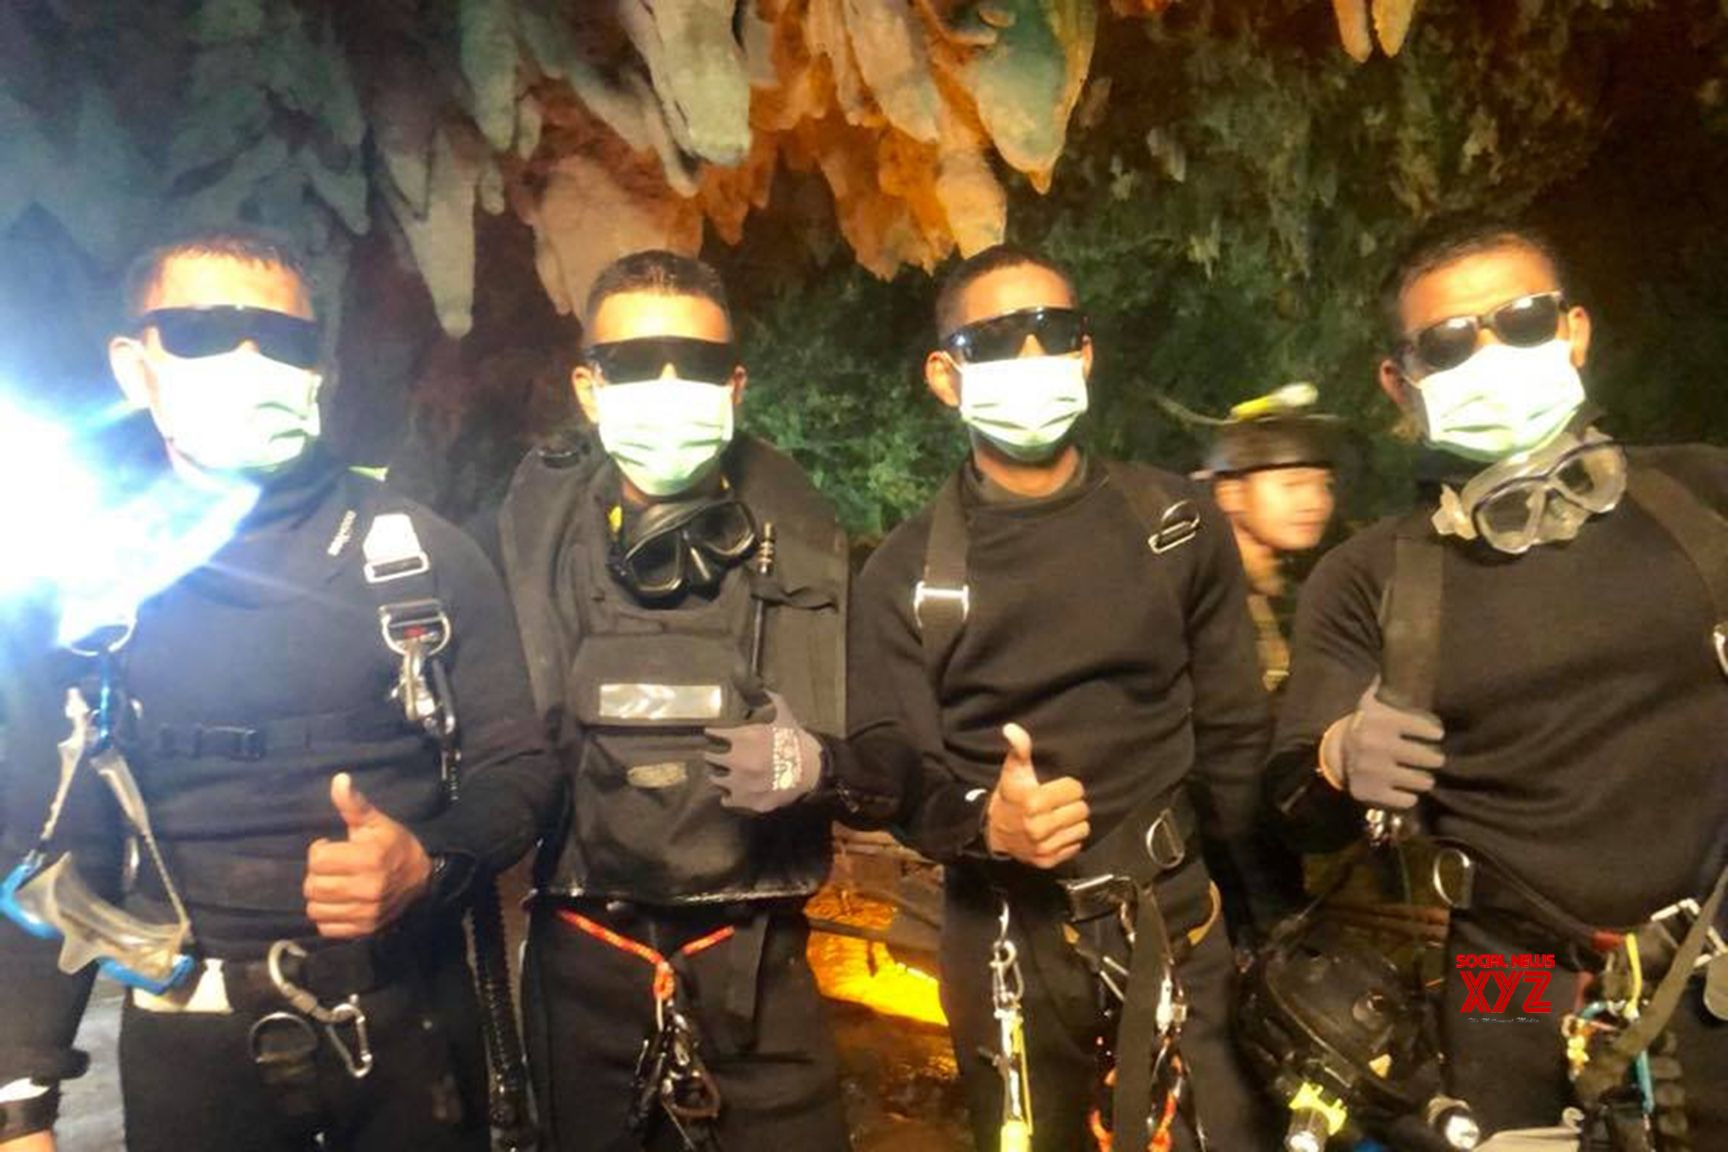 Now a movie on Thai cave rescue